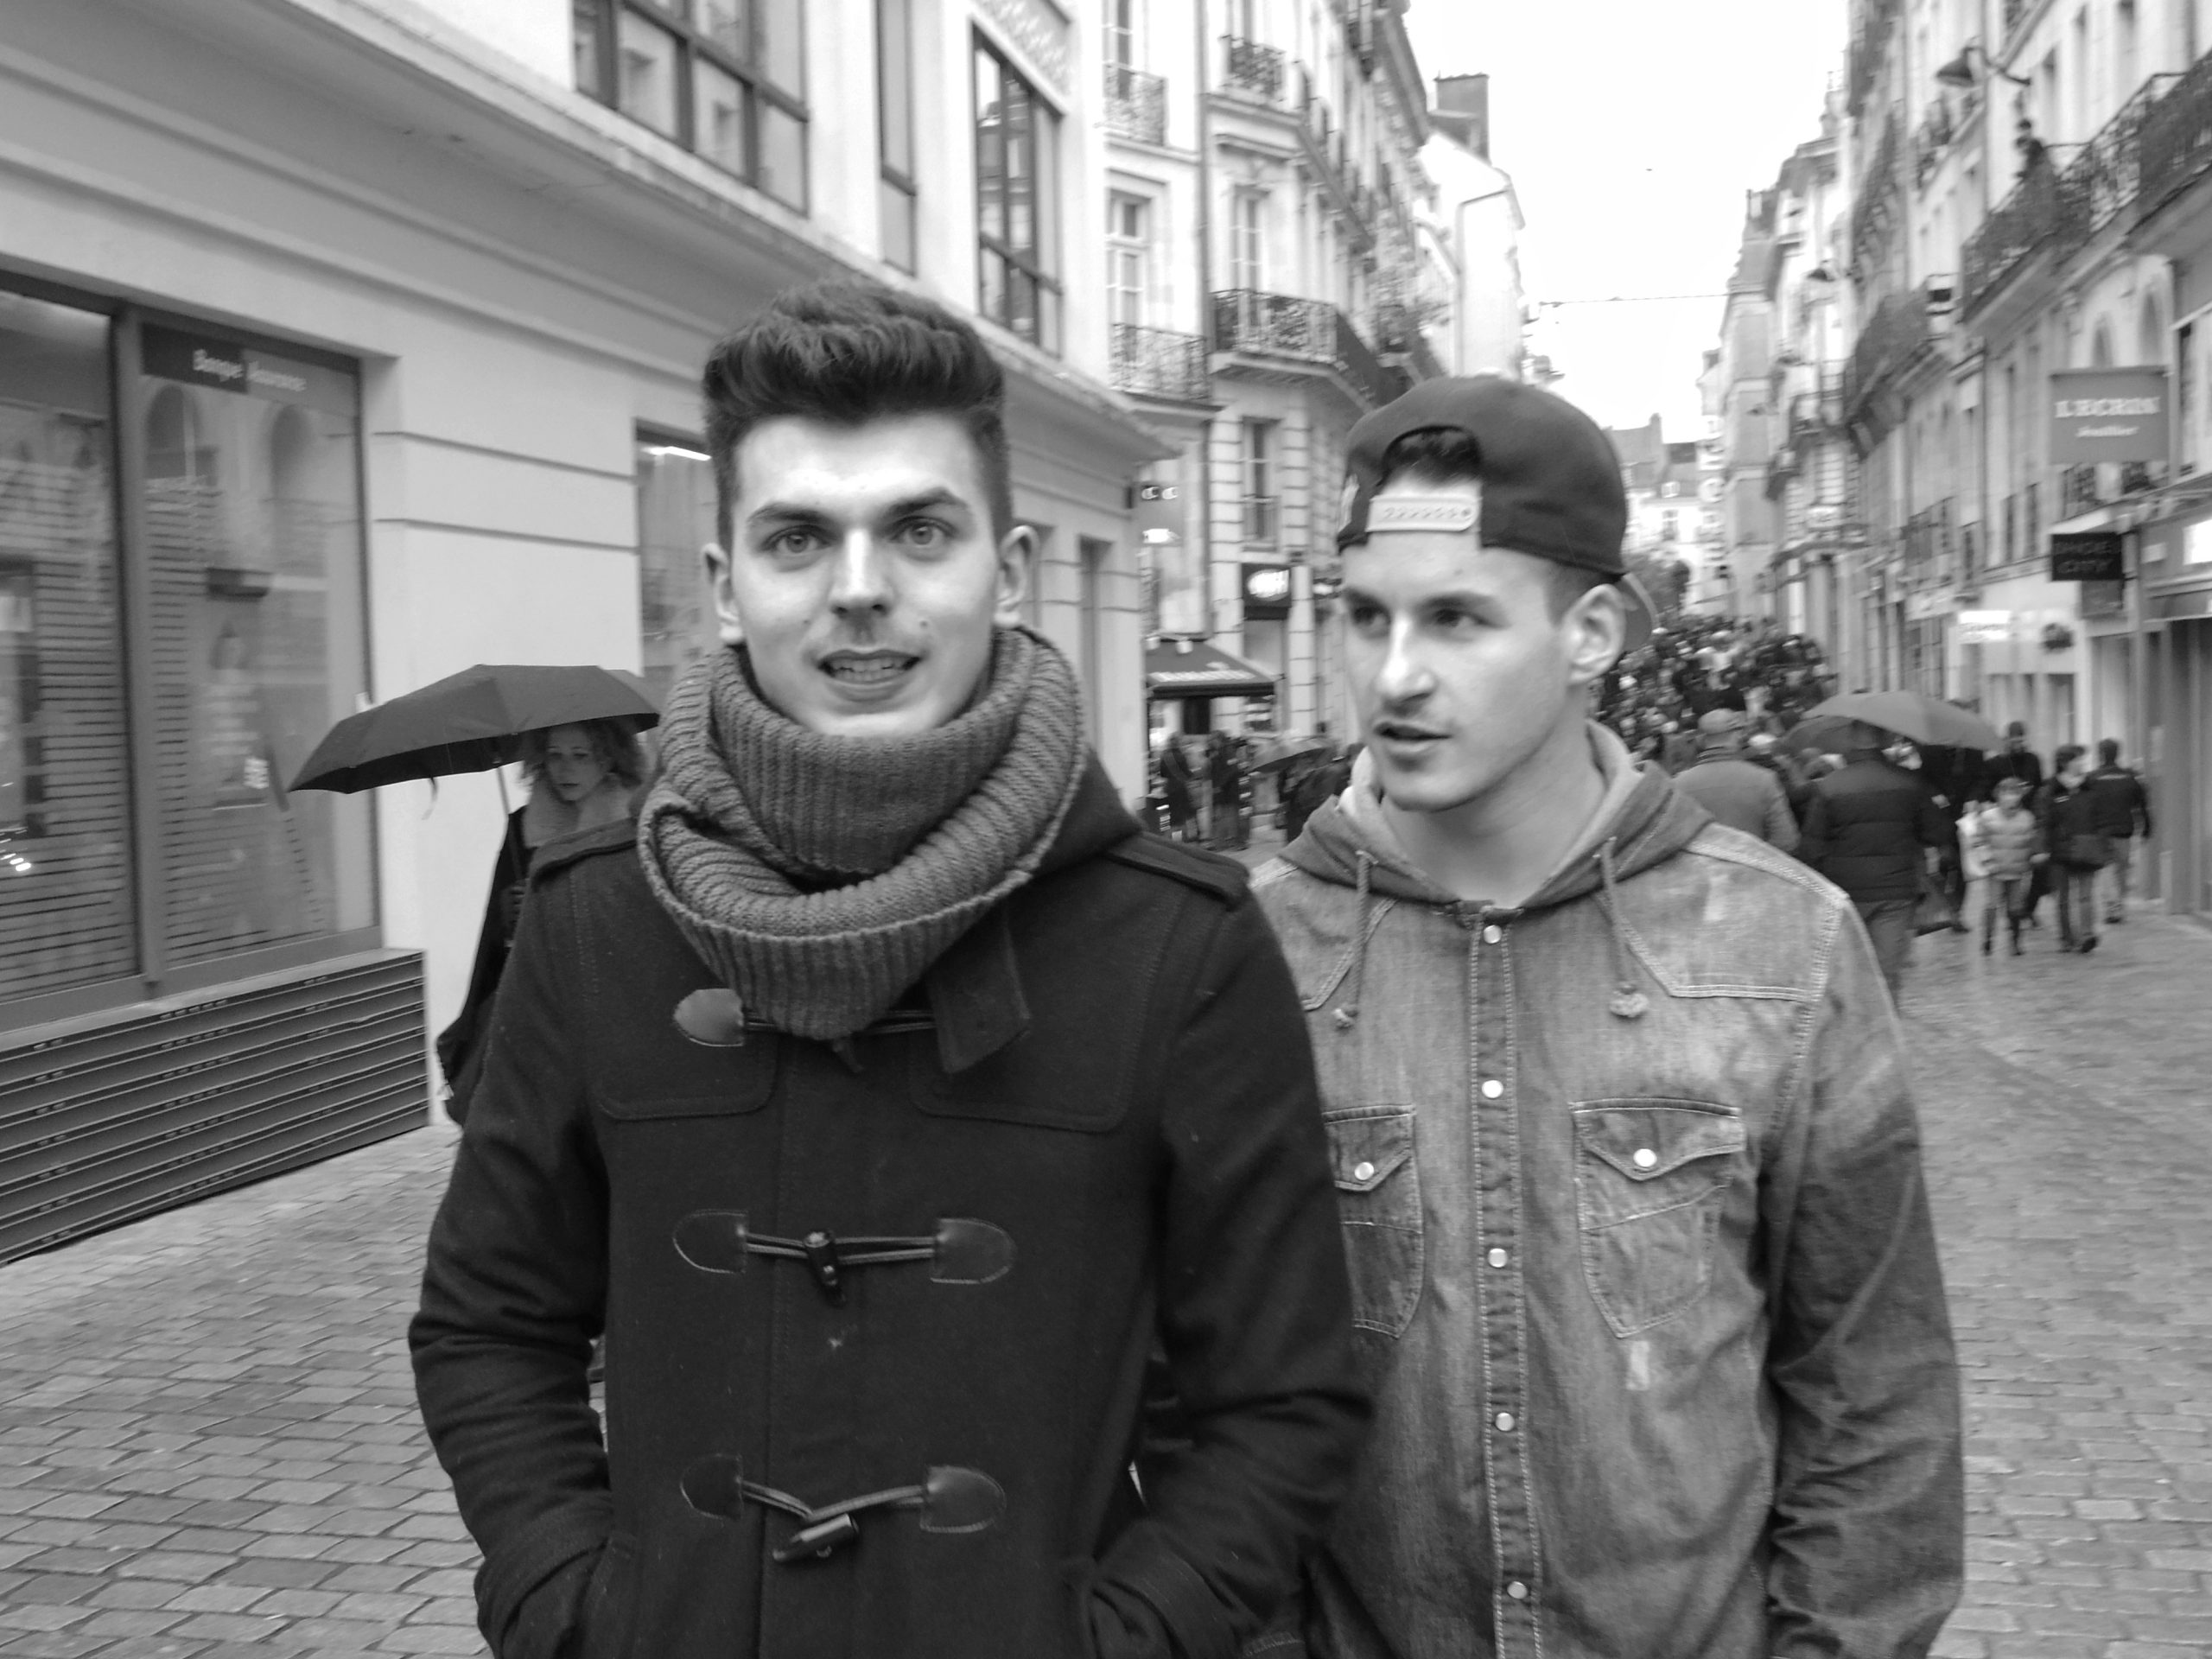 Young guys walking in Nantes - Fuji X-Pro1